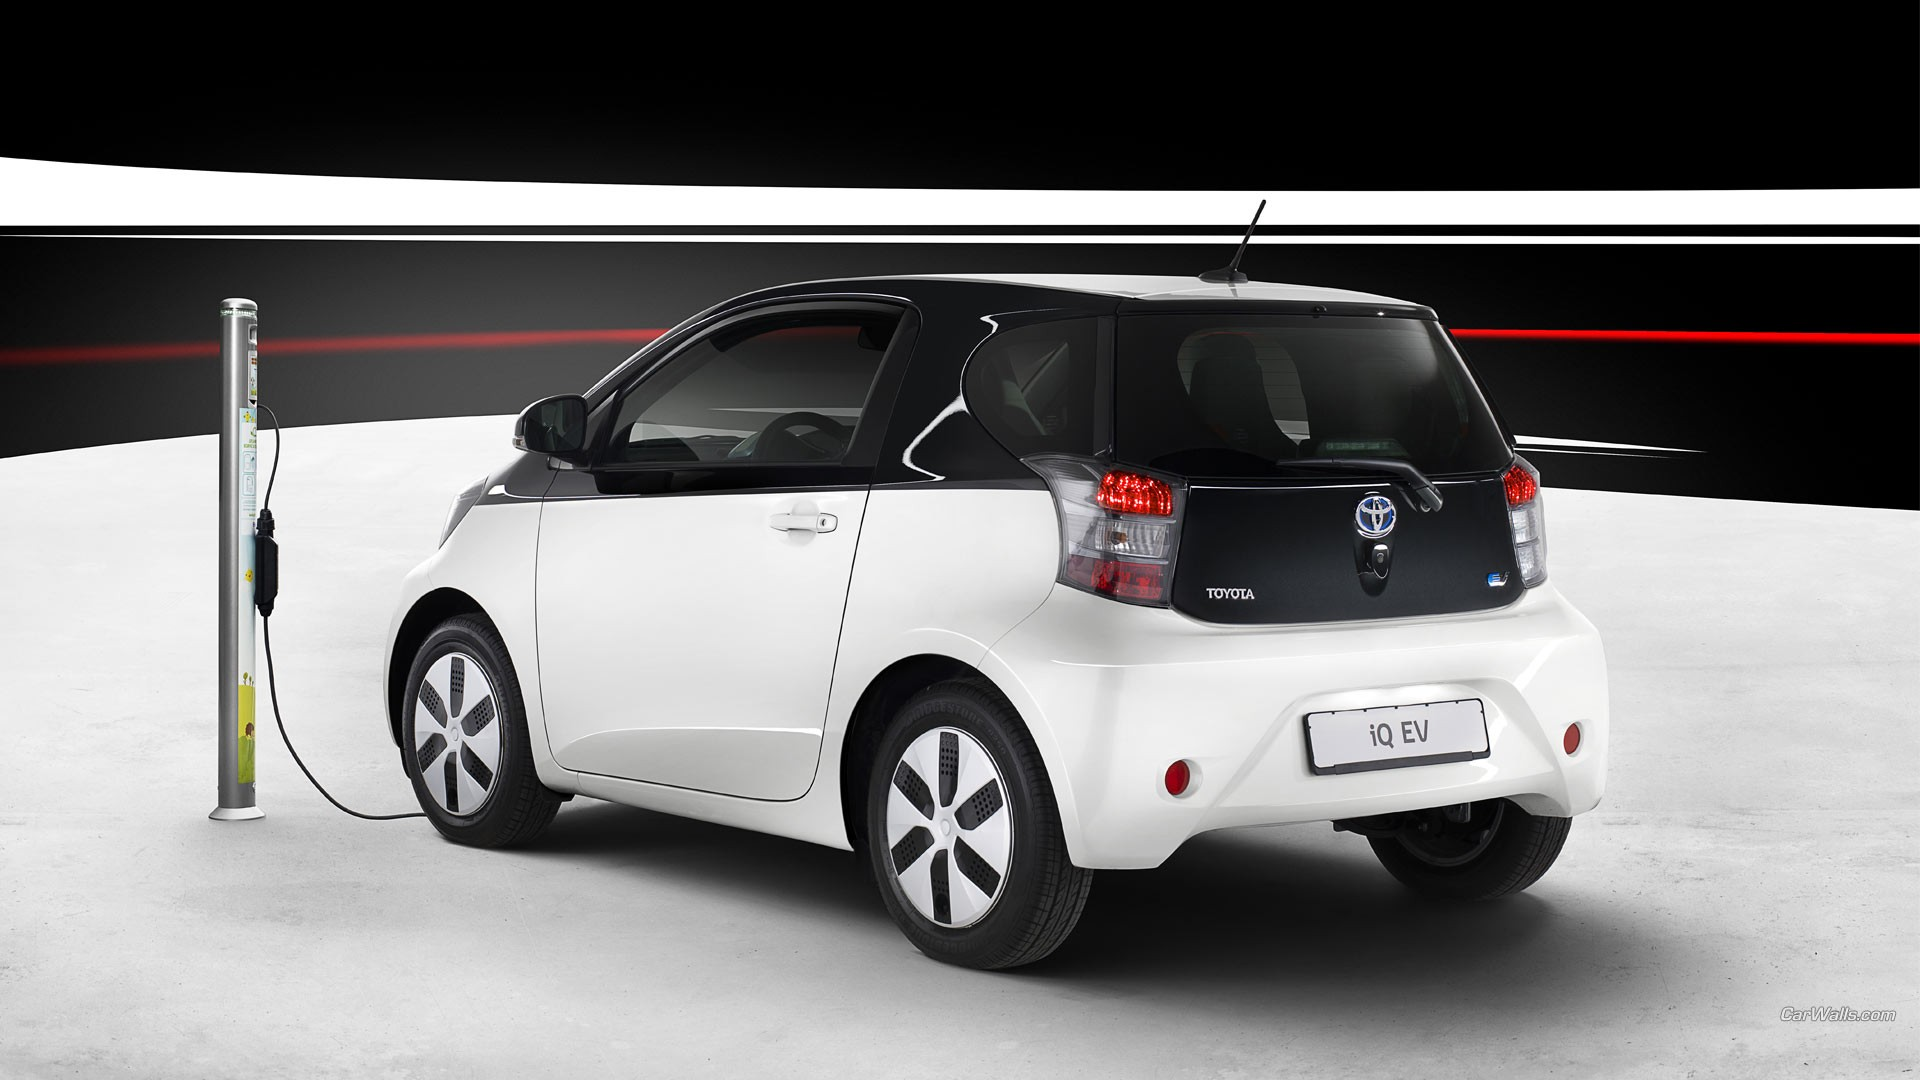 3d Car Wallpaper For Desktop Download Toyota Iq Car Electric Cars Wallpapers Hd Desktop And